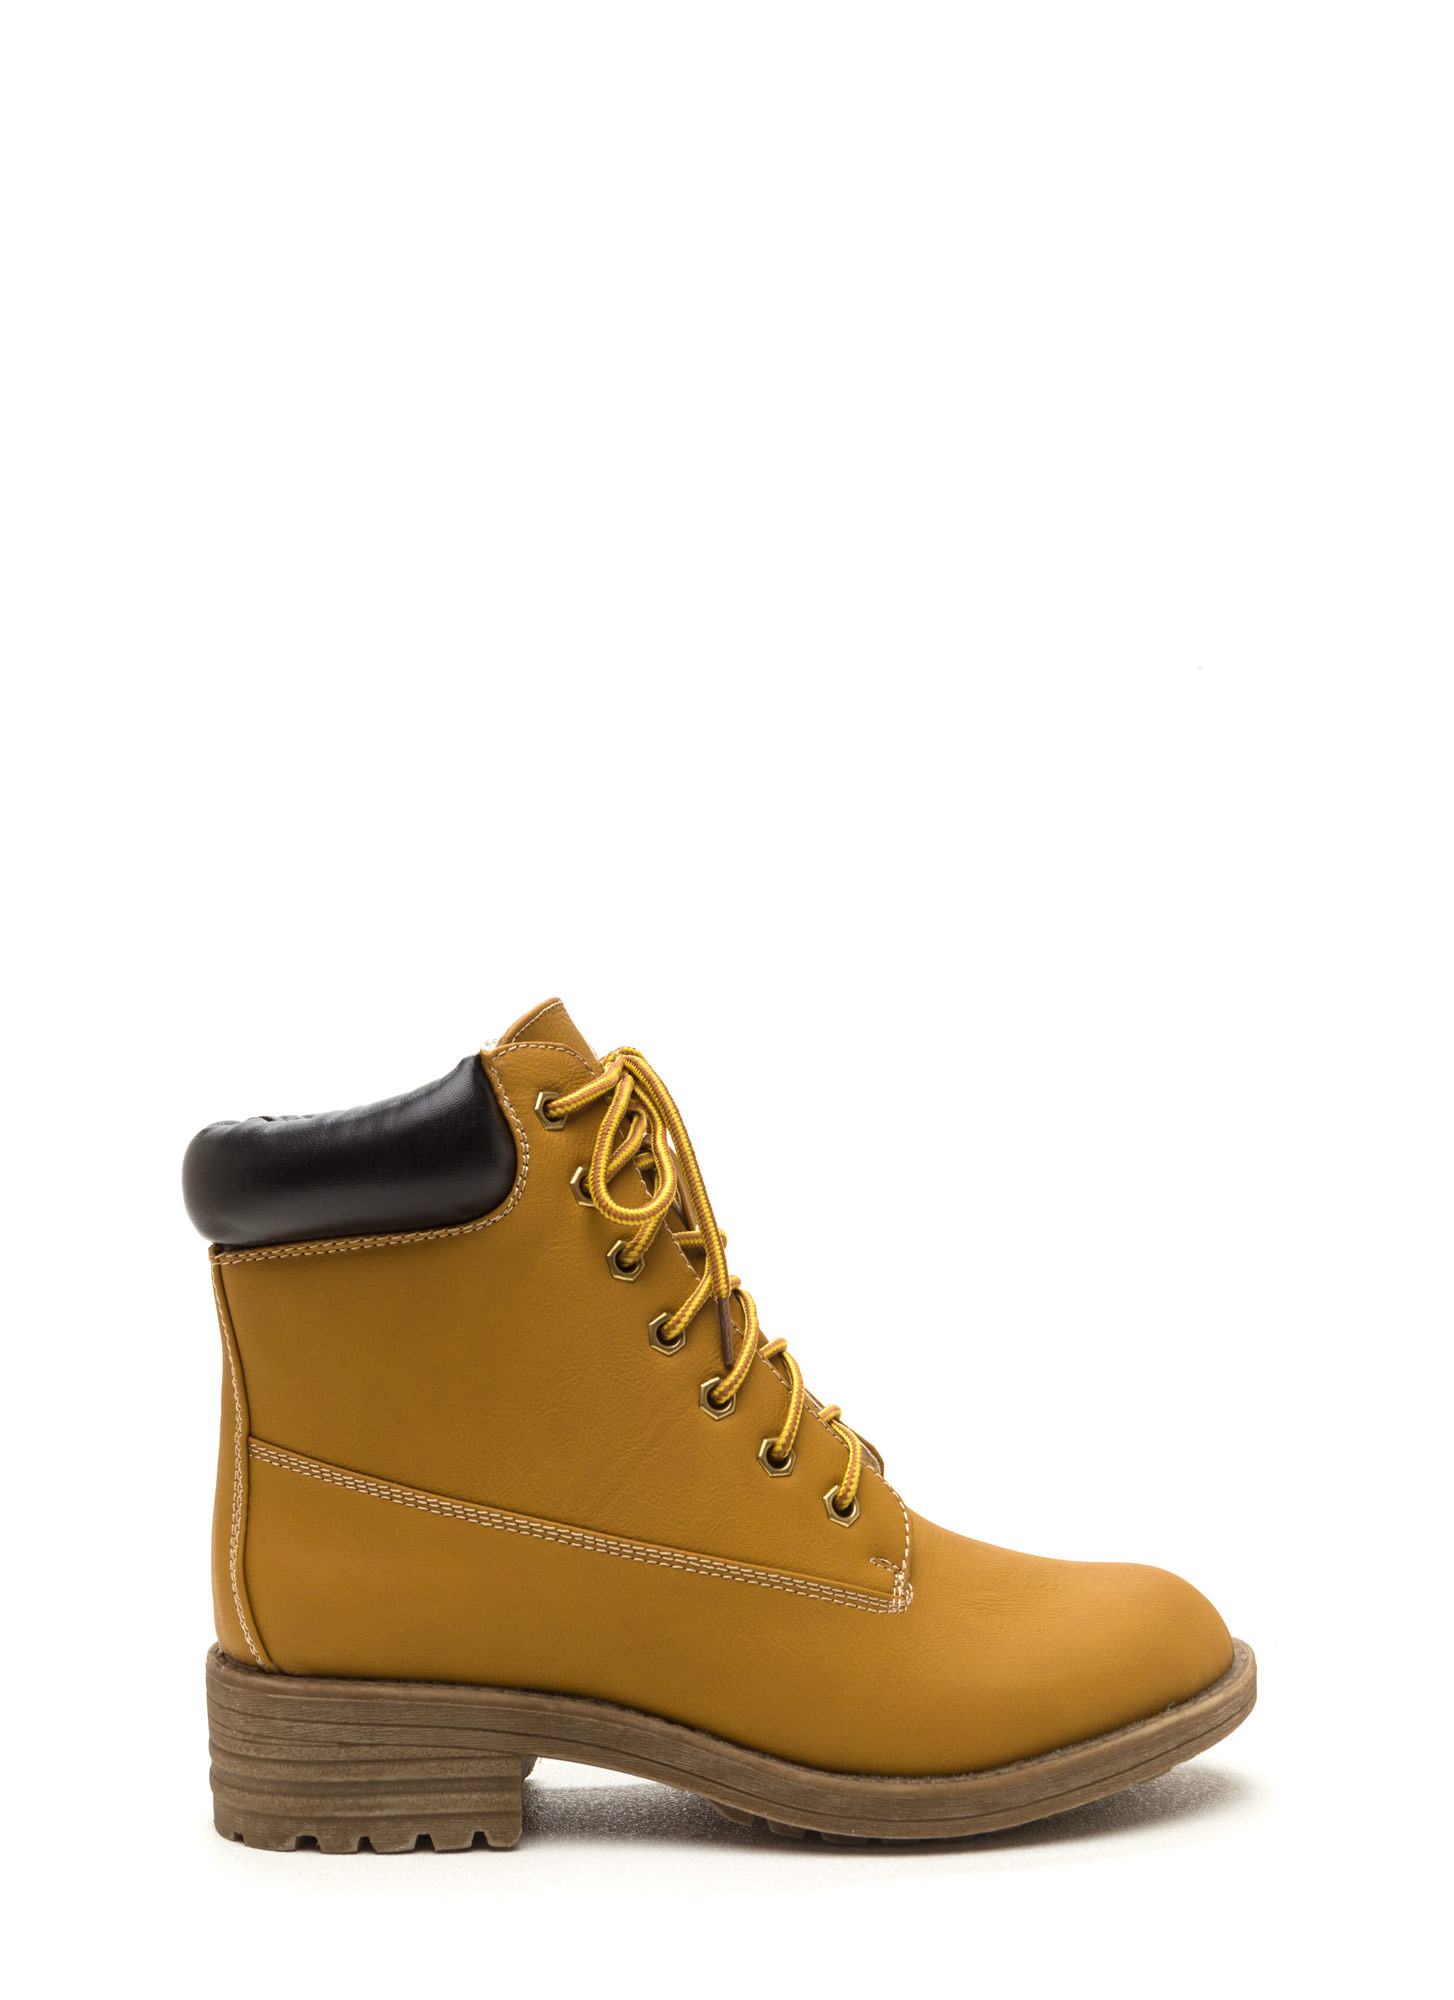 Take A Hike Lace Up Boots WHEAT